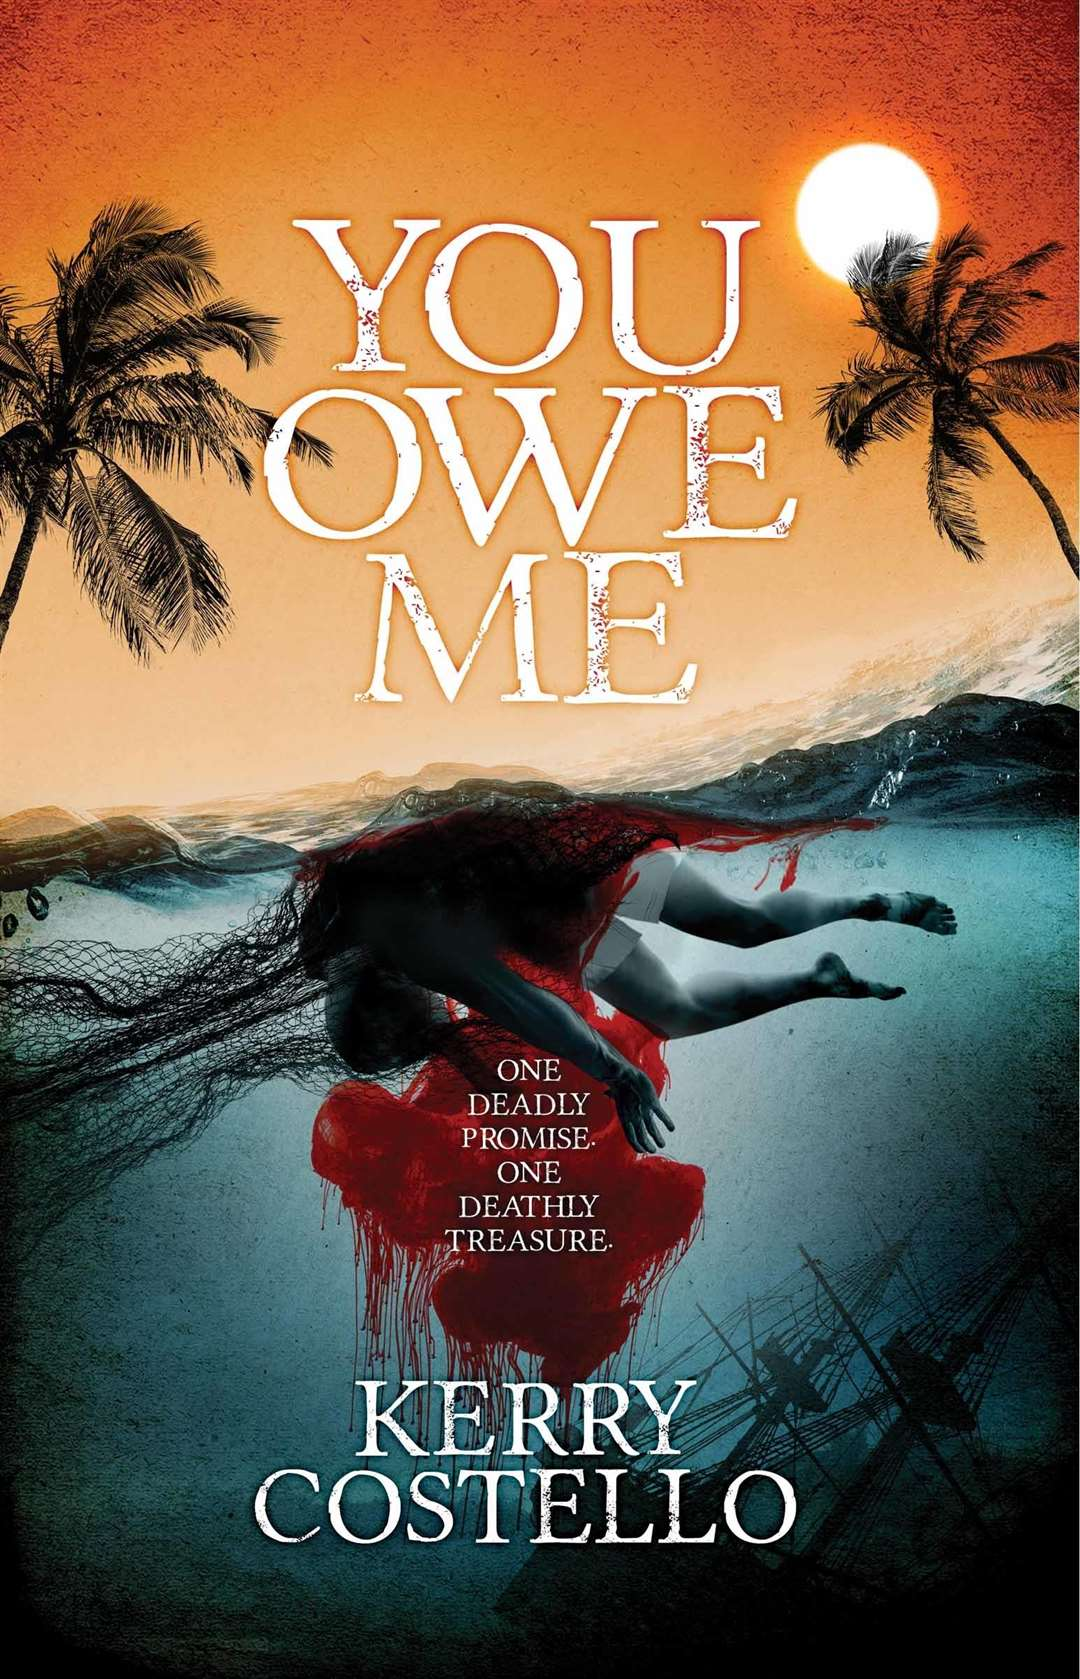 Mr Costello is a thriller writer and has recently released You Owe Me (7442499)